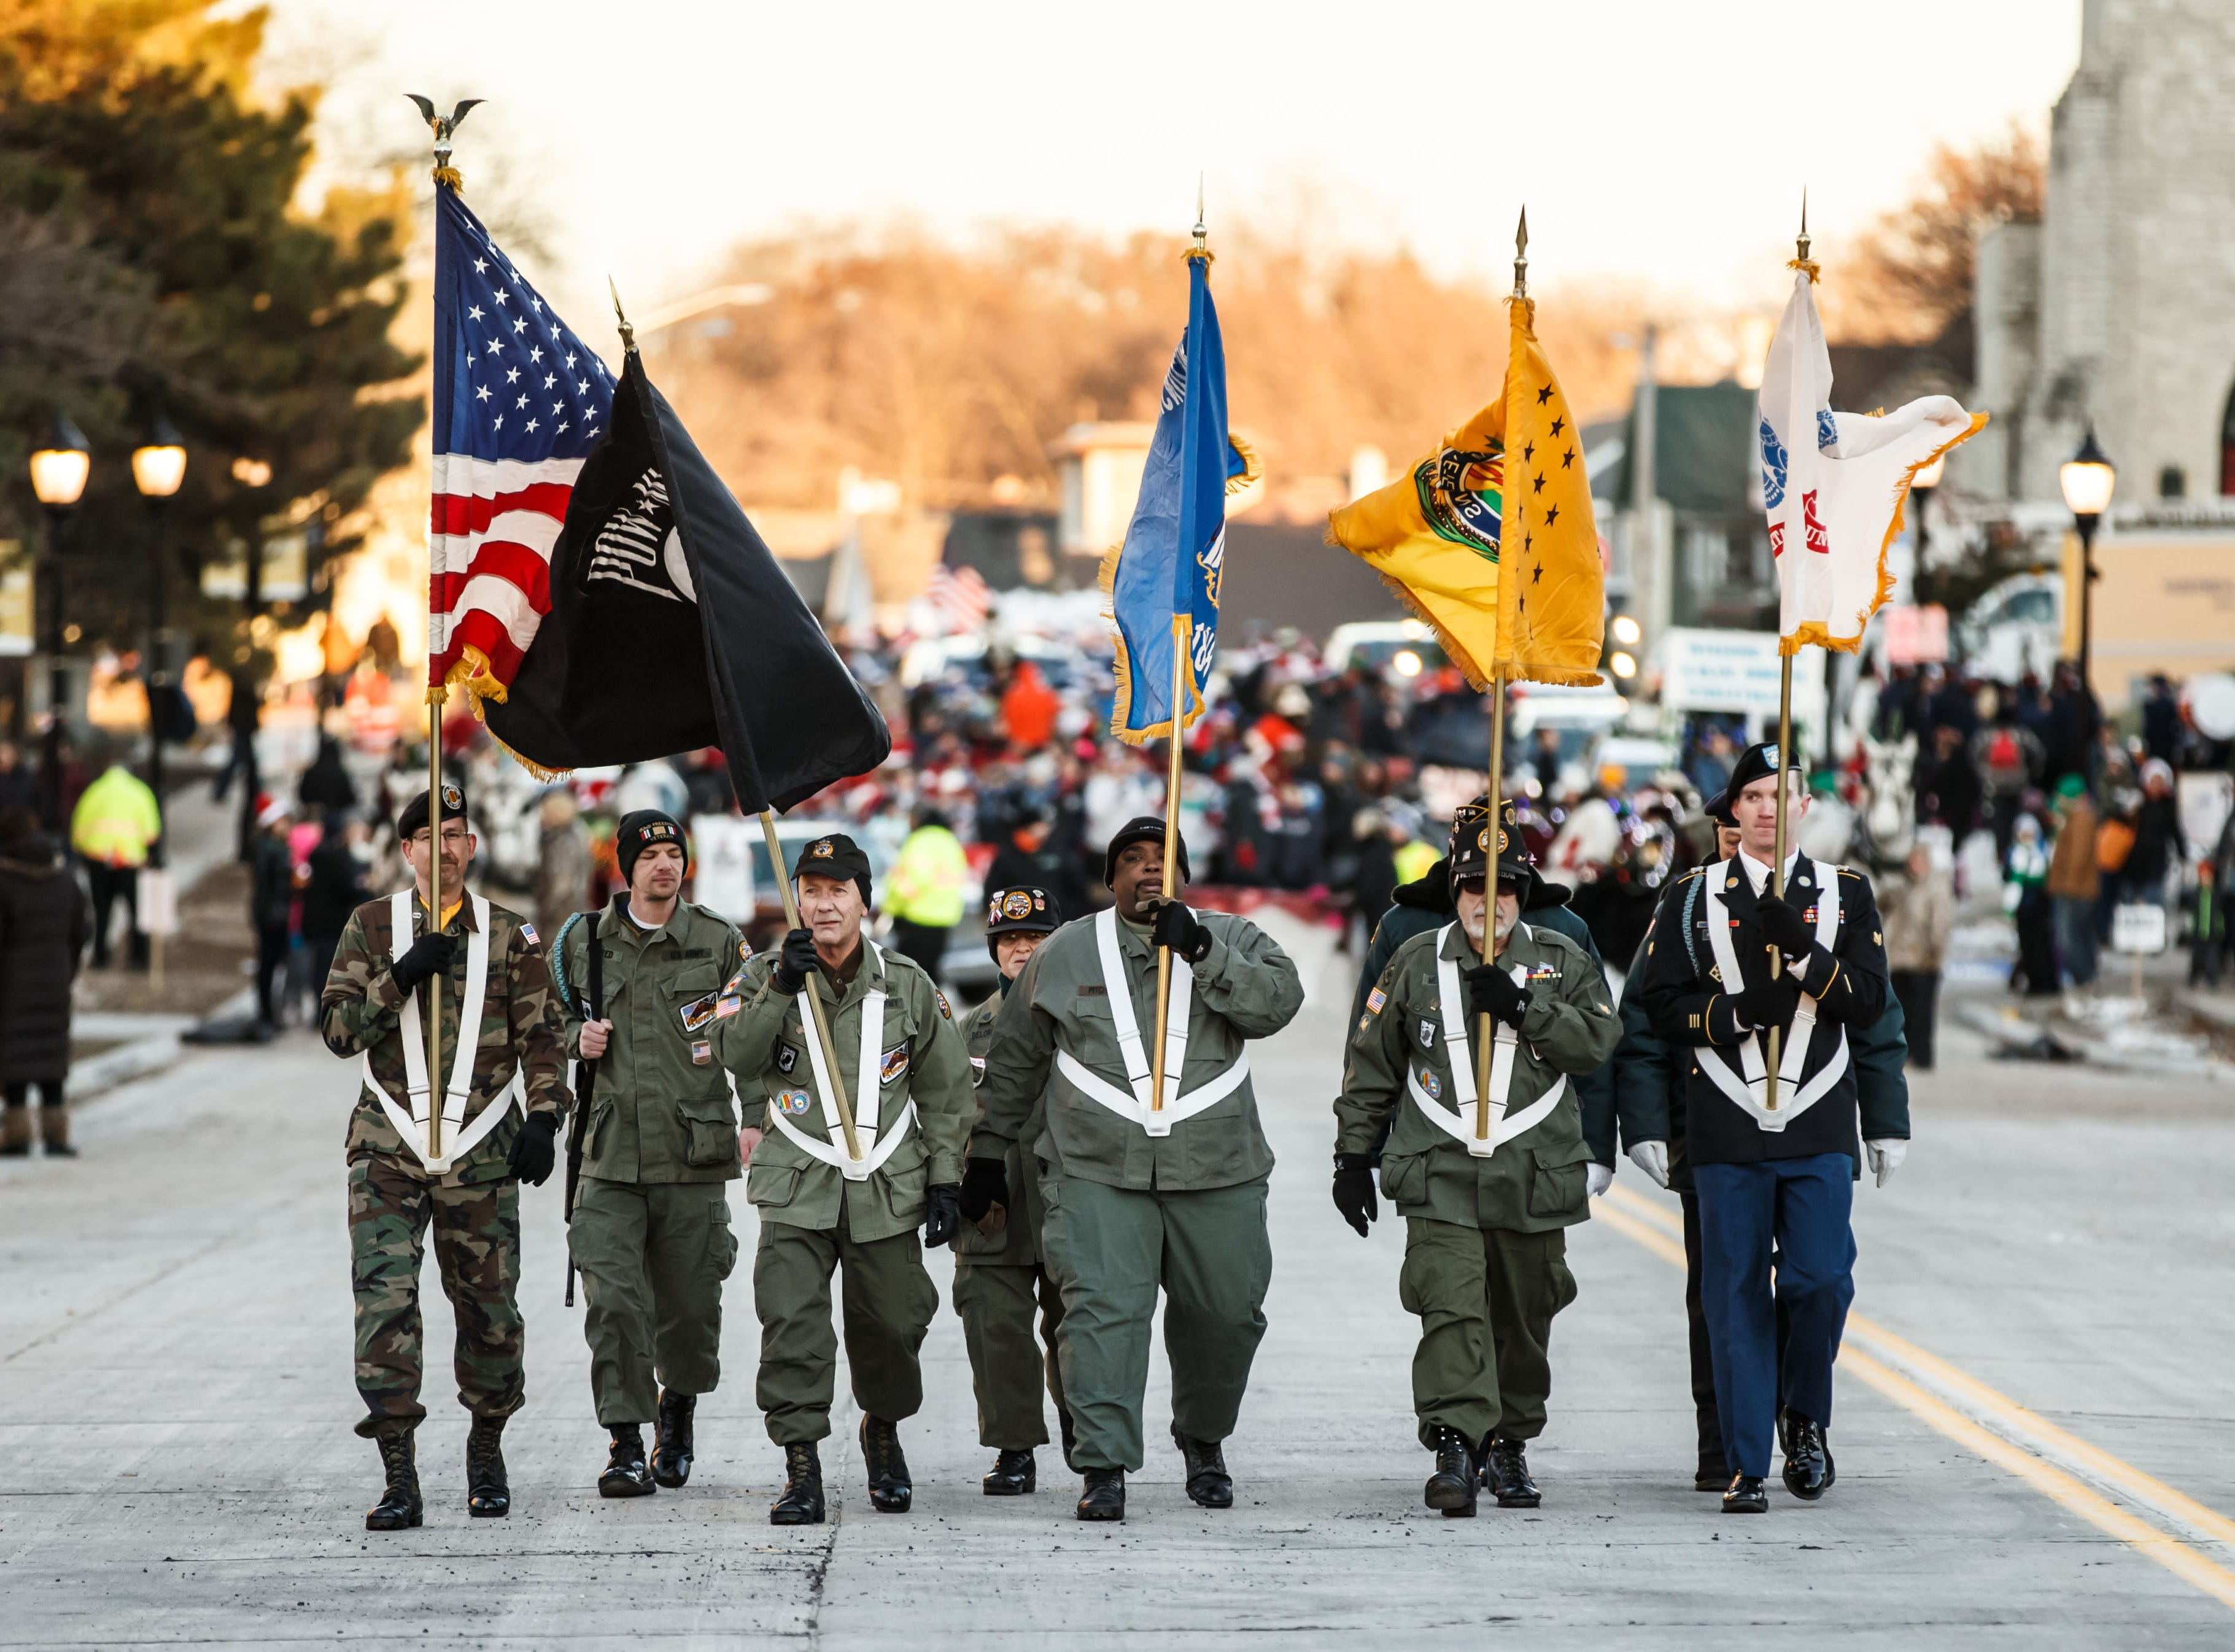 Members of the Vietnam Veterans of America Waukesha Chapter 425 march in the 56th annual Waukesha Christmas Parade through town on Sunday, Nov. 18, 2018.